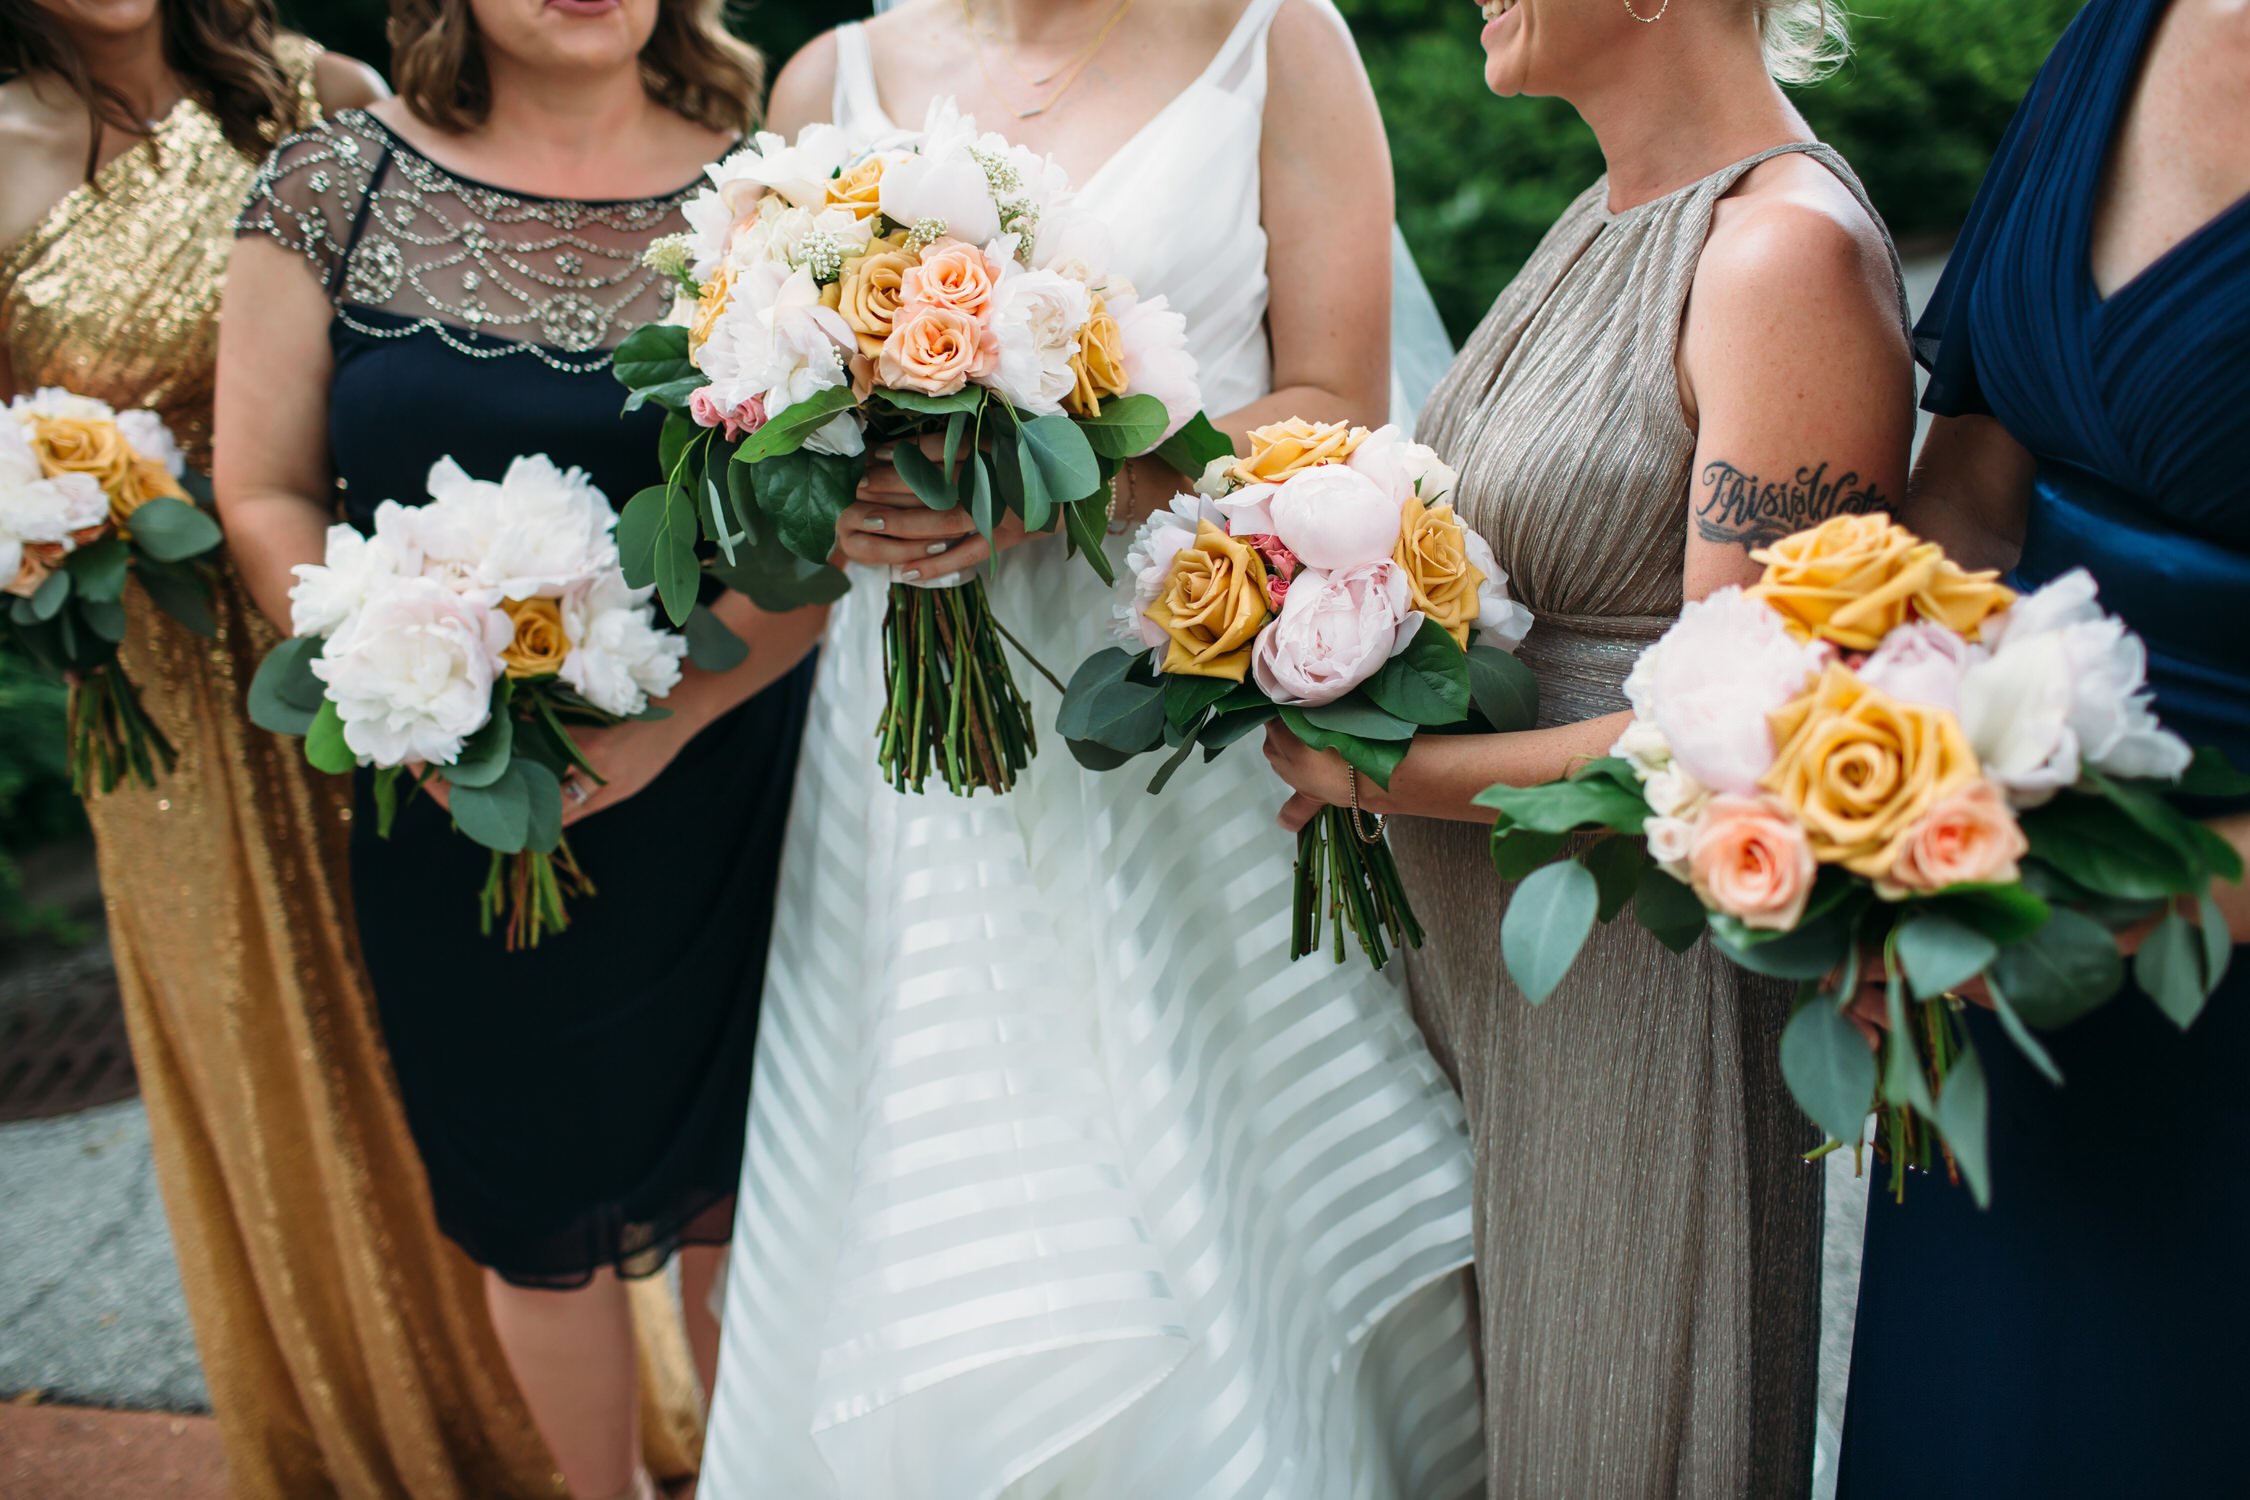 Bridesmaids and bouquets, wedding day details